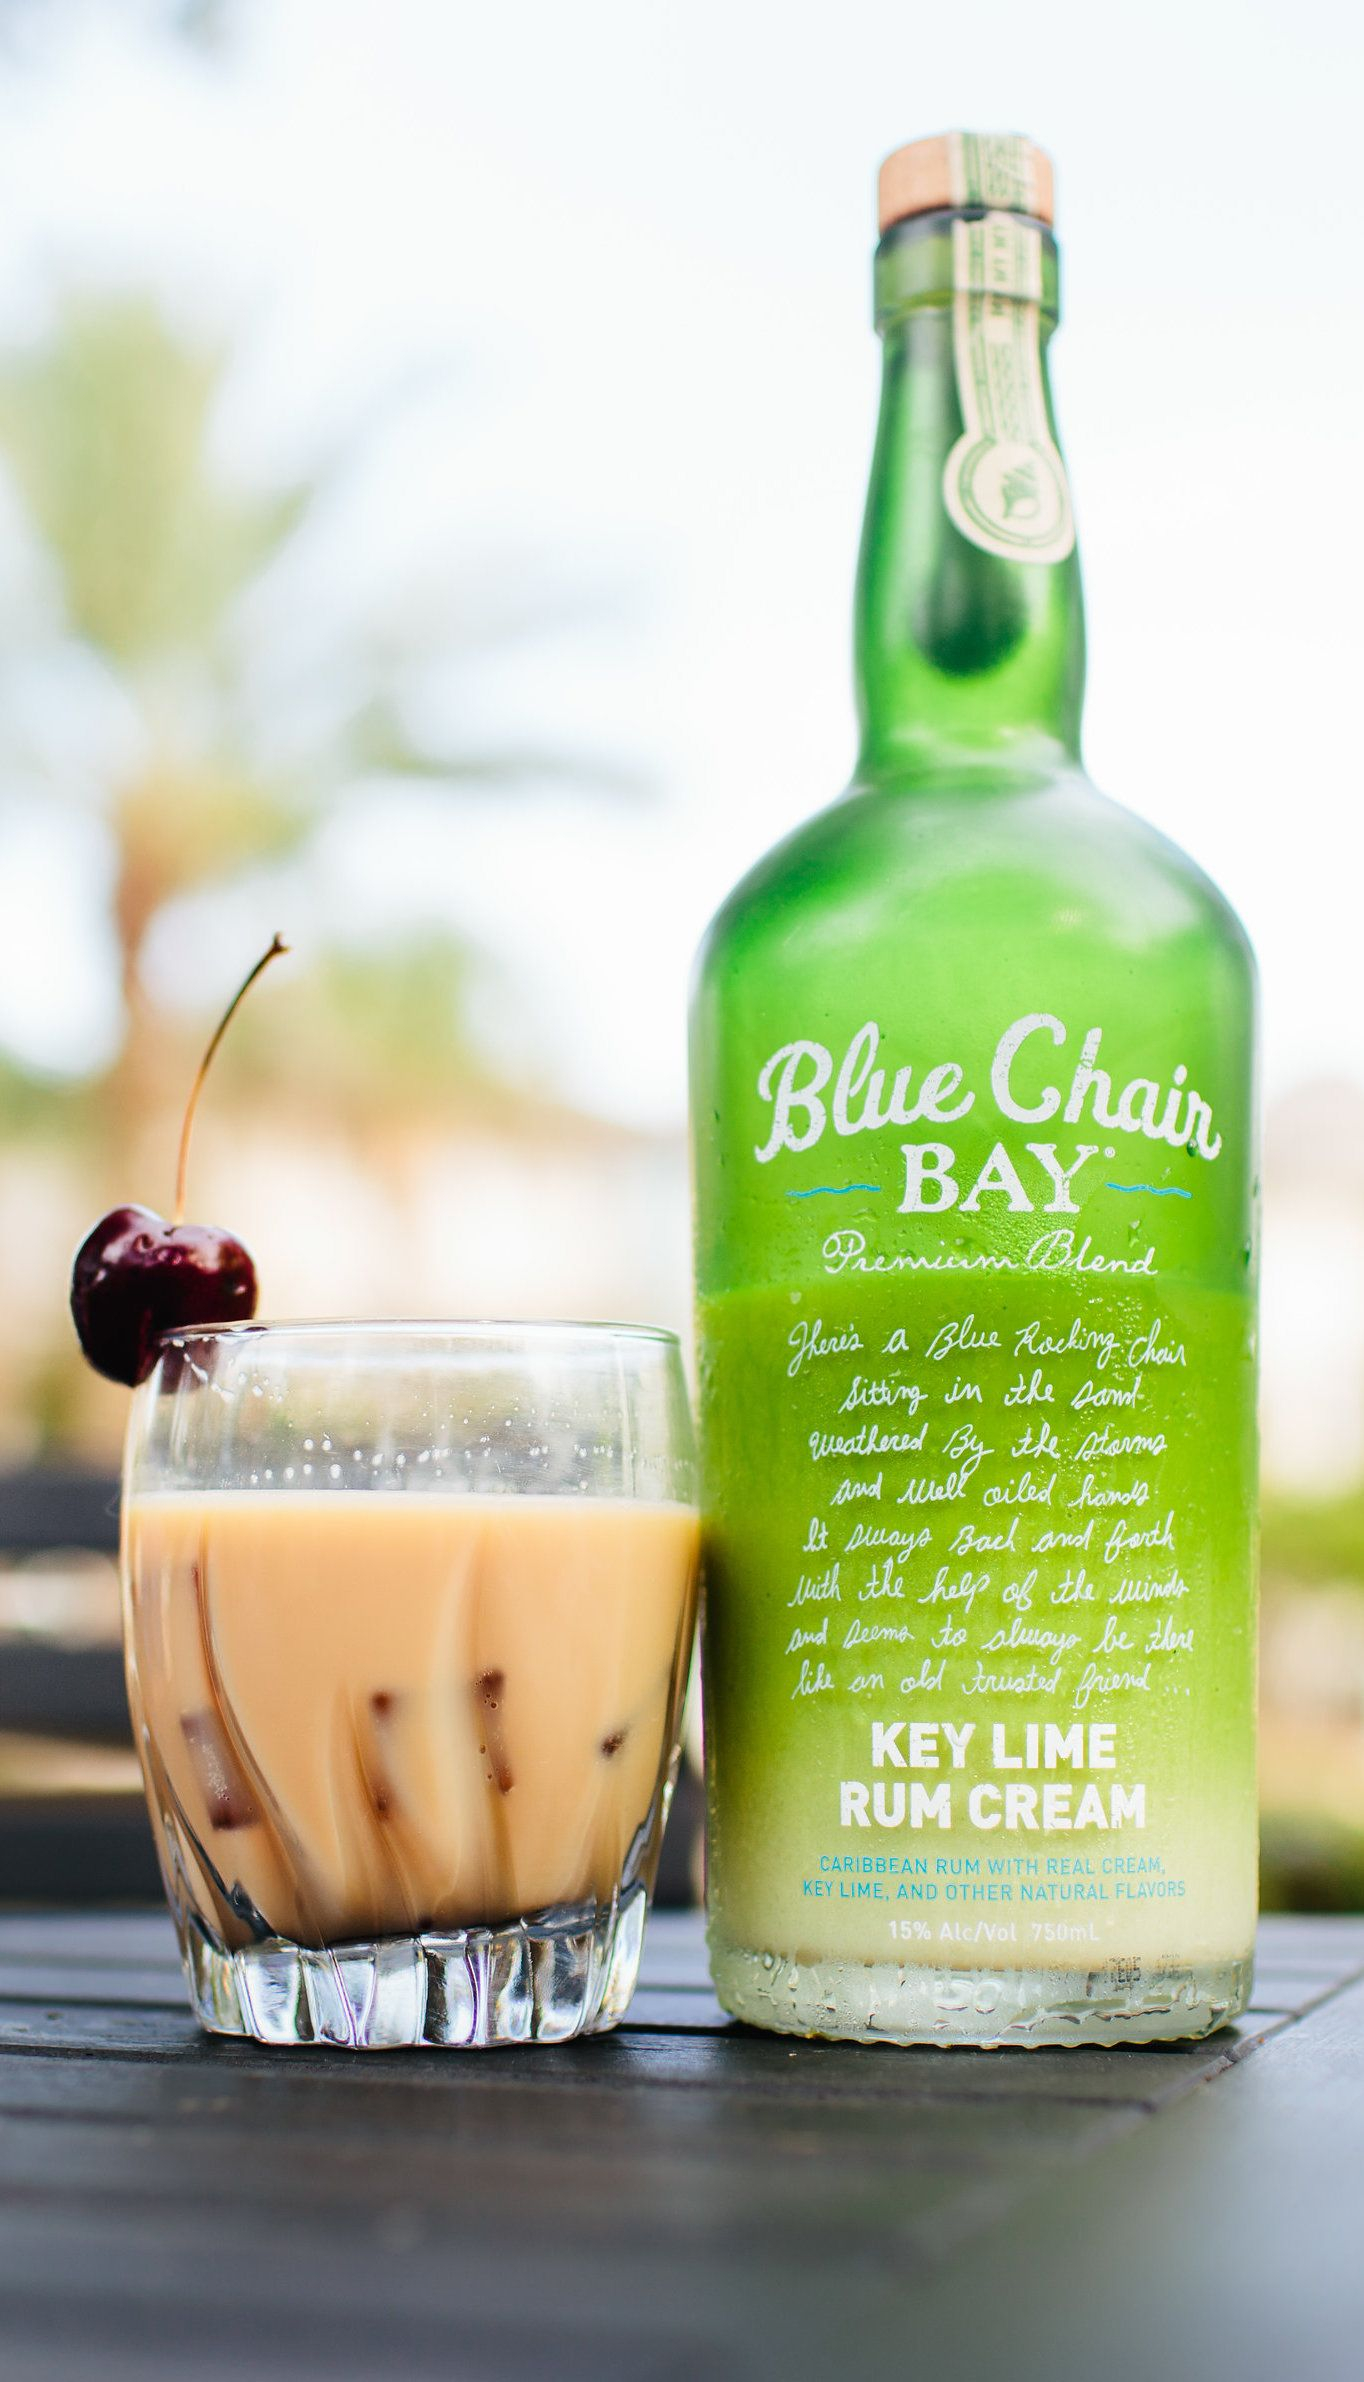 buy blue chair bay rum online wedding covers hire manchester coffee and pie cocktail 1 oz key lime